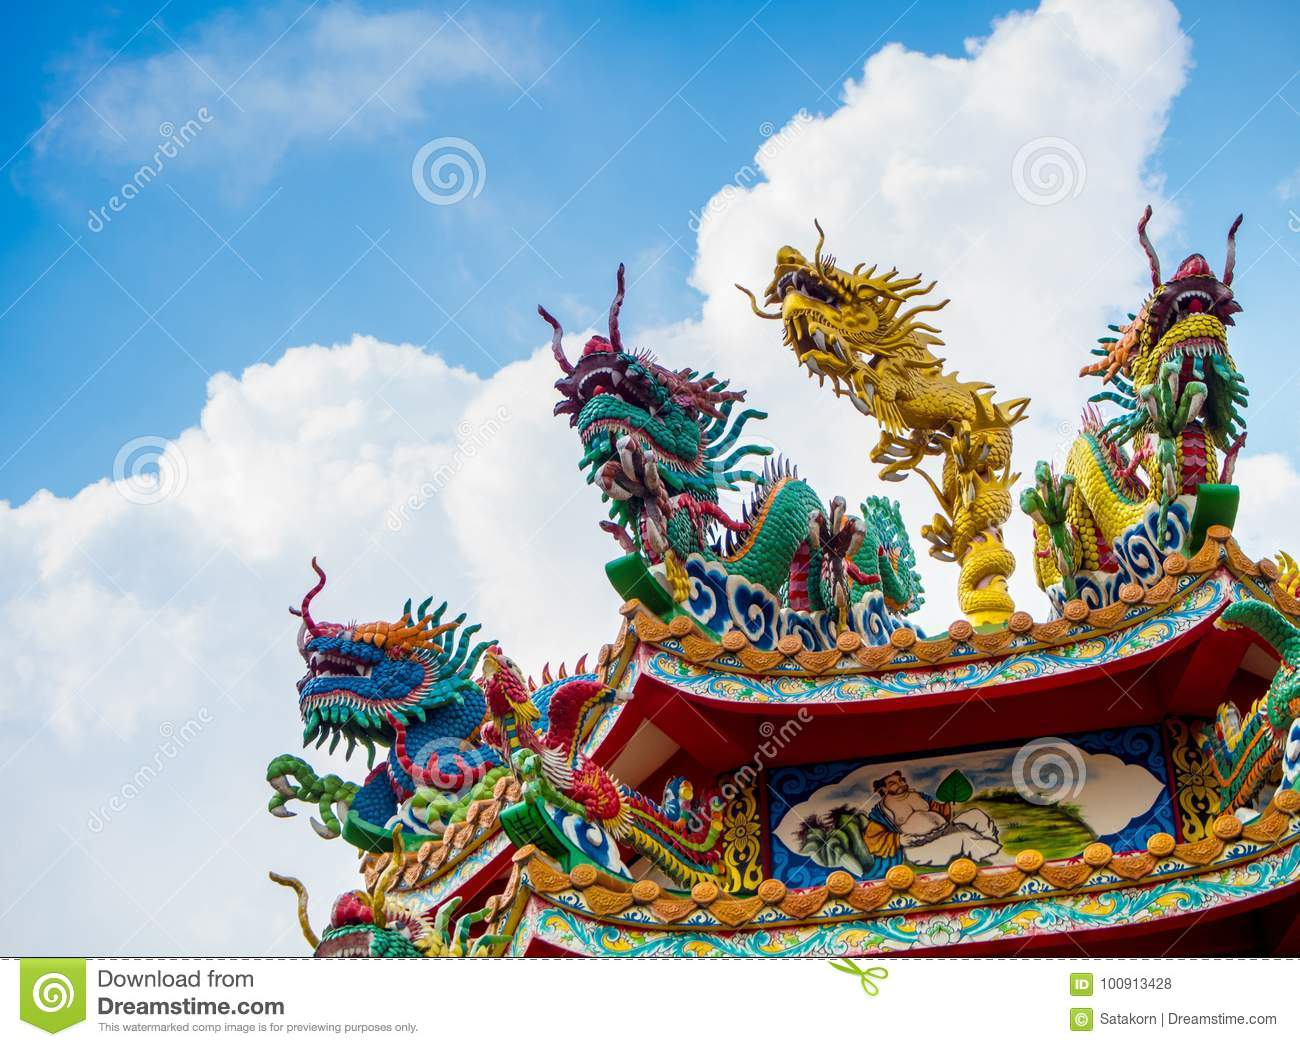 Download Colorful Chinese Dragon And Swan Sculpture On The Rooftops Of Ch Stock Photo - Image of heaven, pillar: 100913428